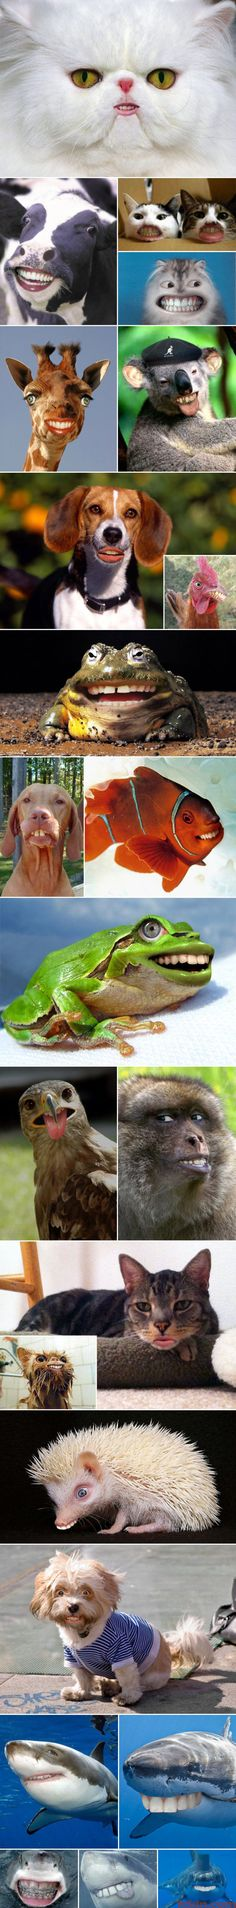 Animals with human mouths...I think some people have too much time on their hands